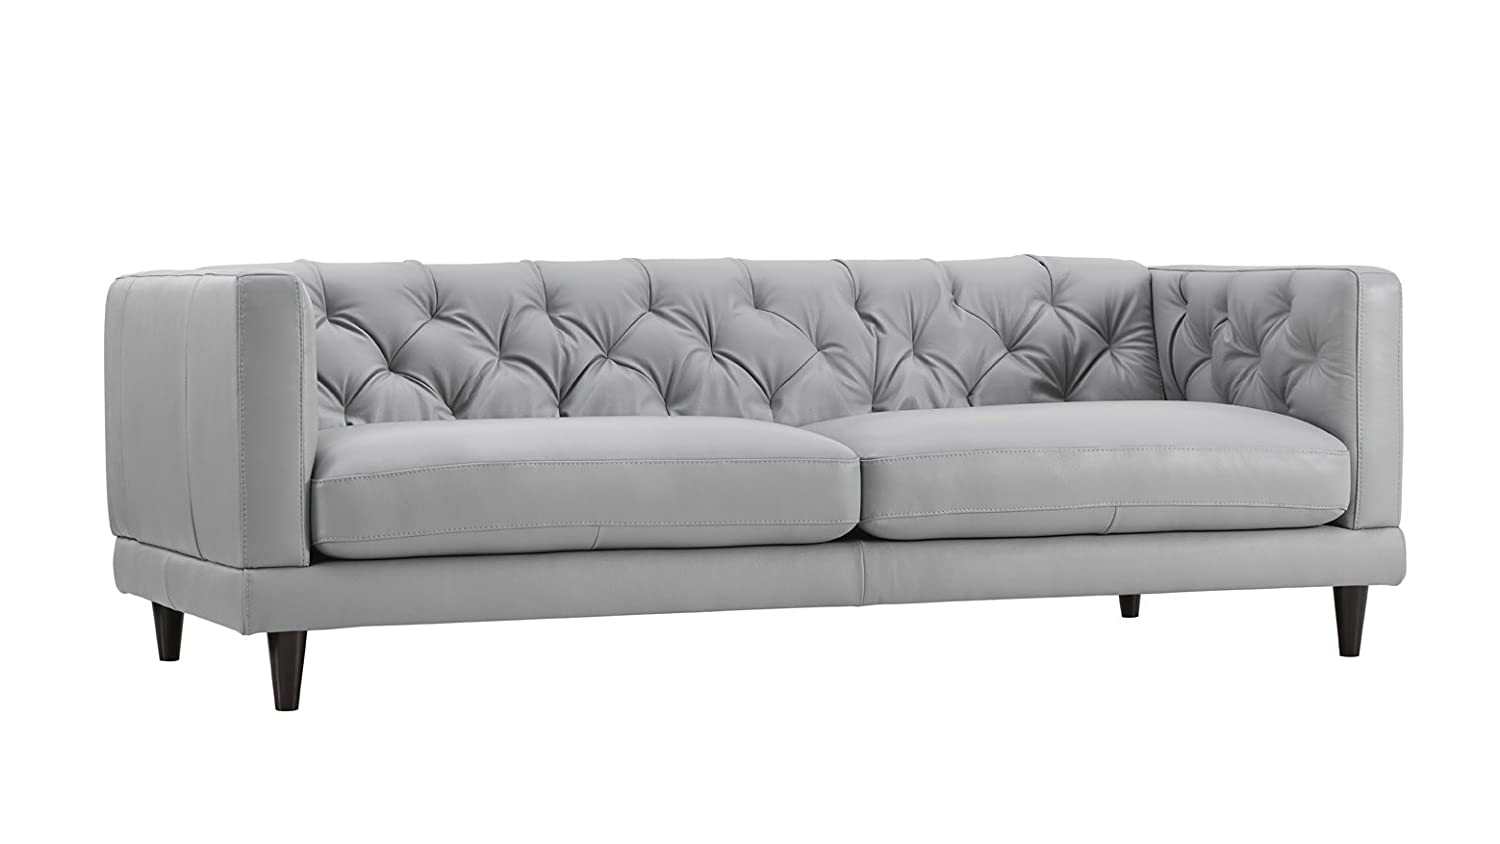 Zeno Light Grey Leather Stationary Sofa  sc 1 st  eBay : natuzzi white leather sectional - Sectionals, Sofas & Couches